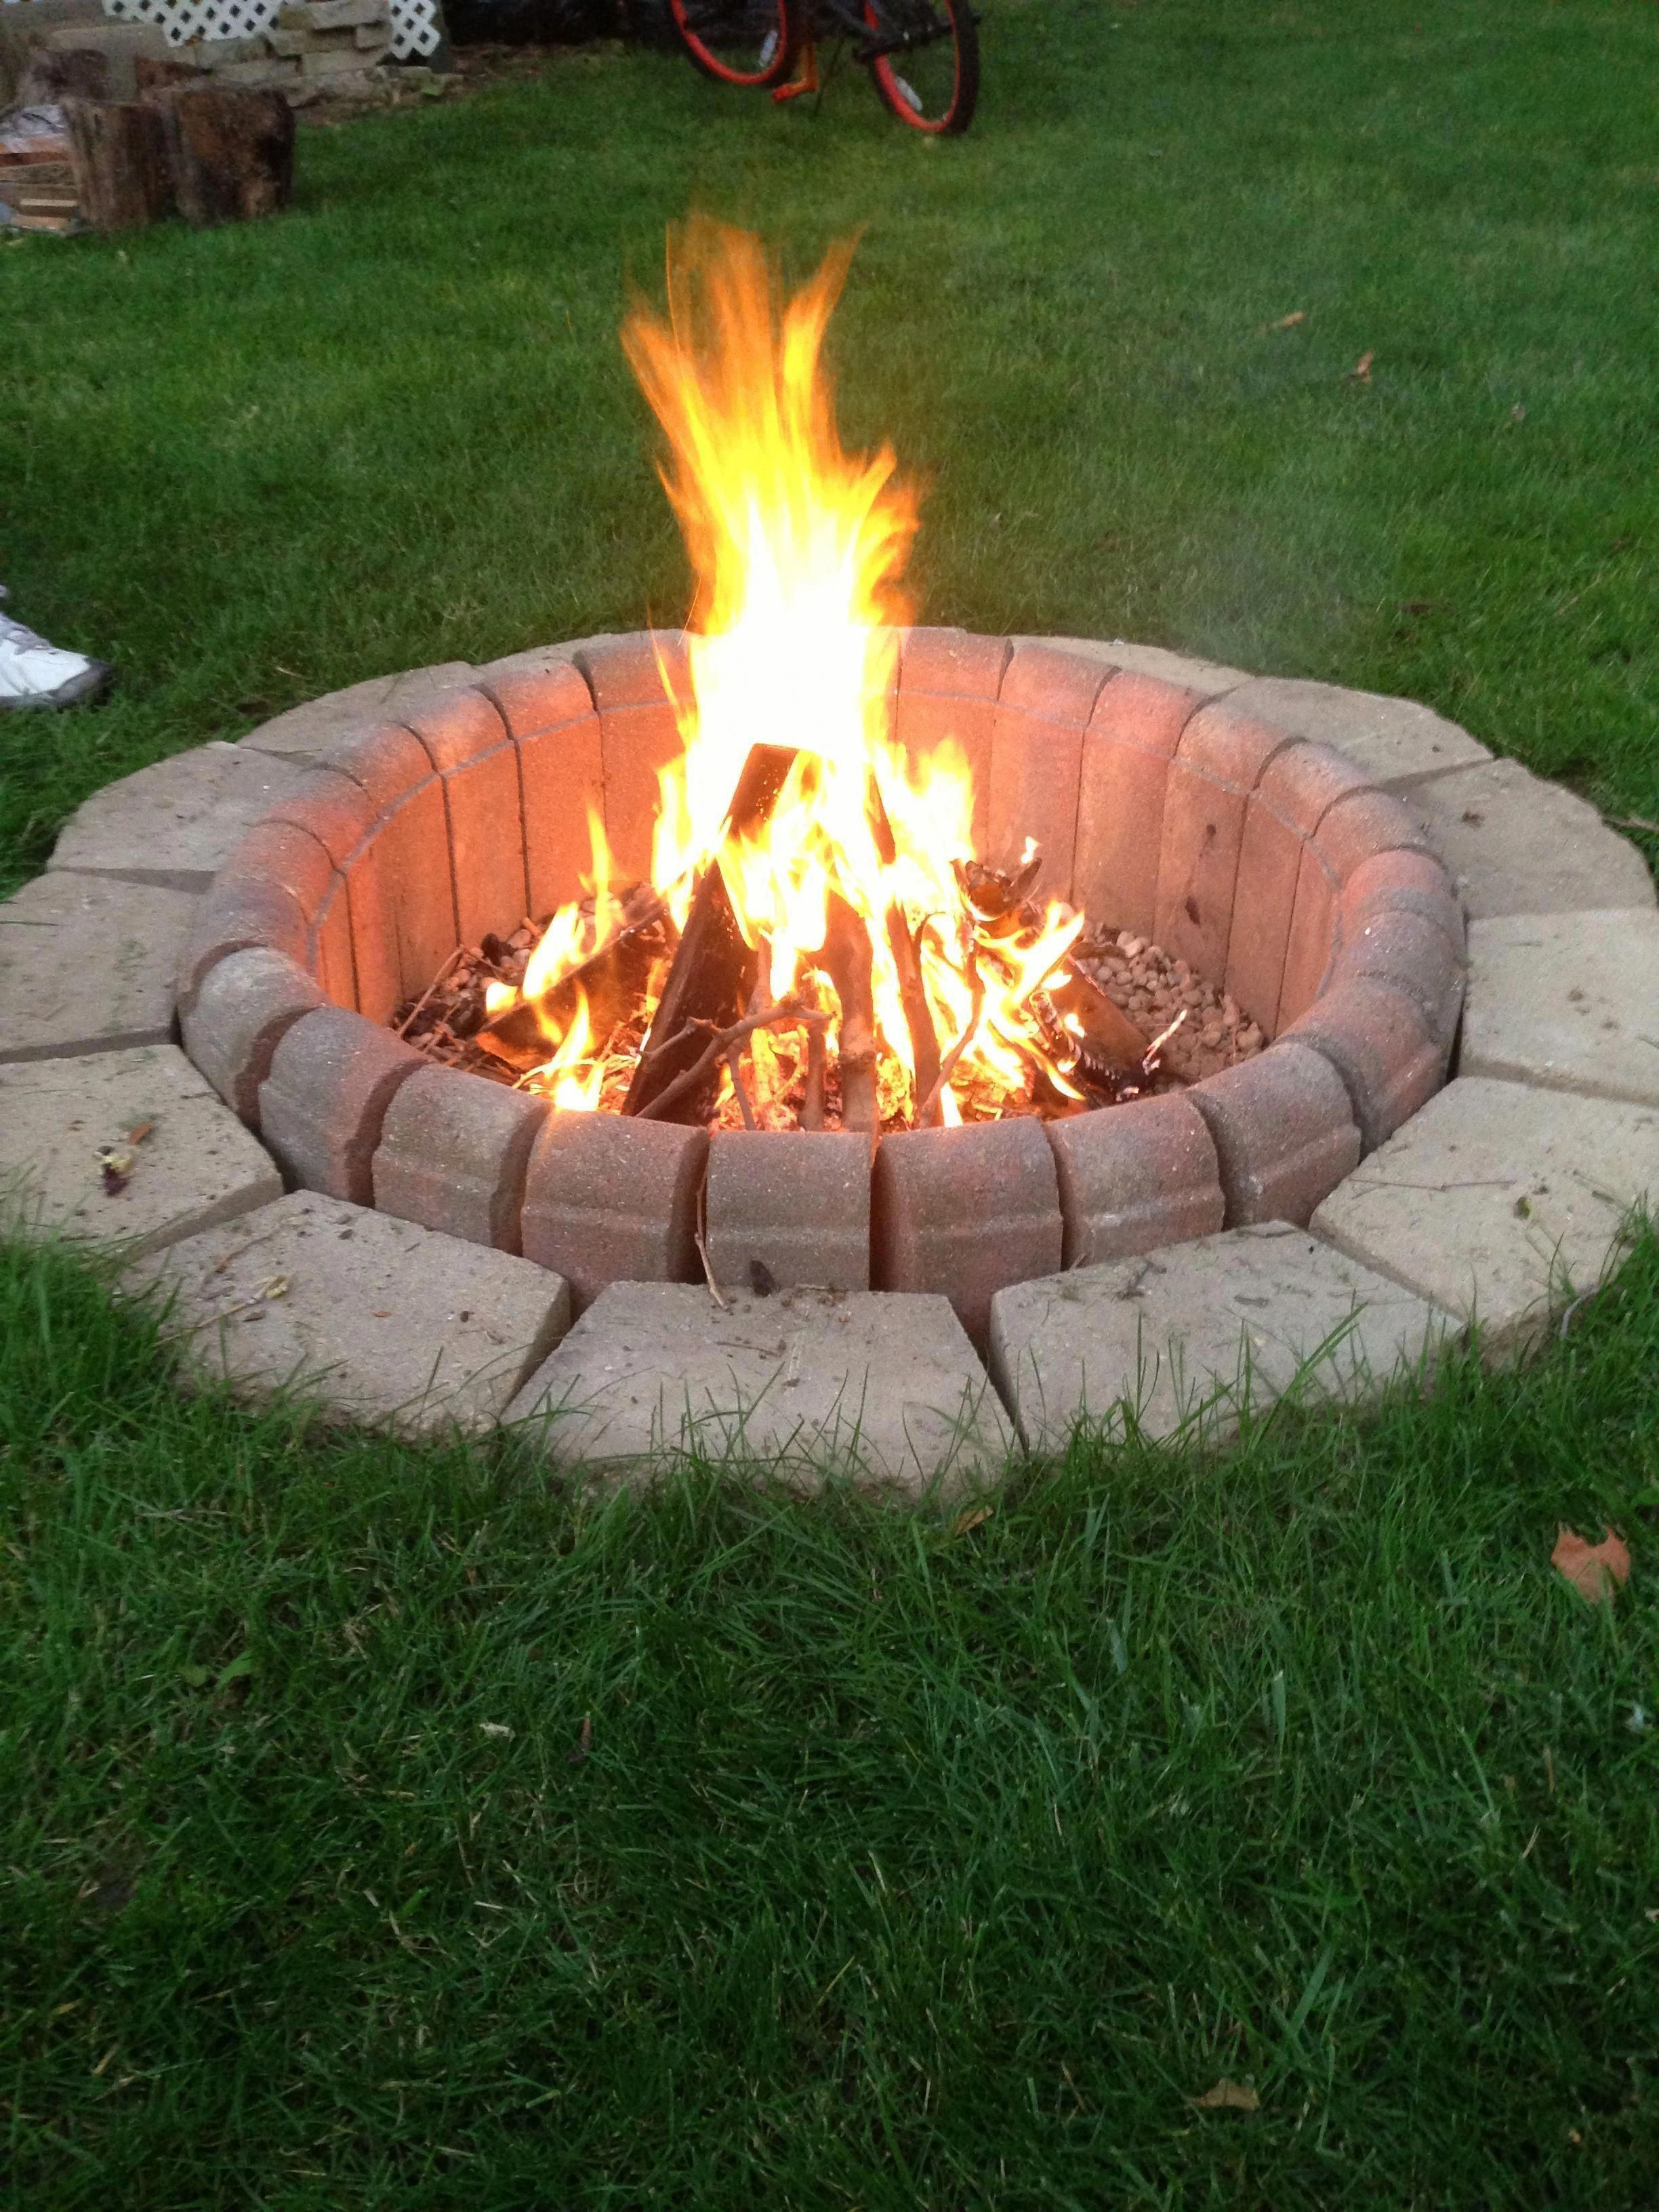 Go And Visit Our Page For Lots More About This Great Fire Pit Firepit Outside Fire Pits Rustic Fire Pits Easy Fire Pit